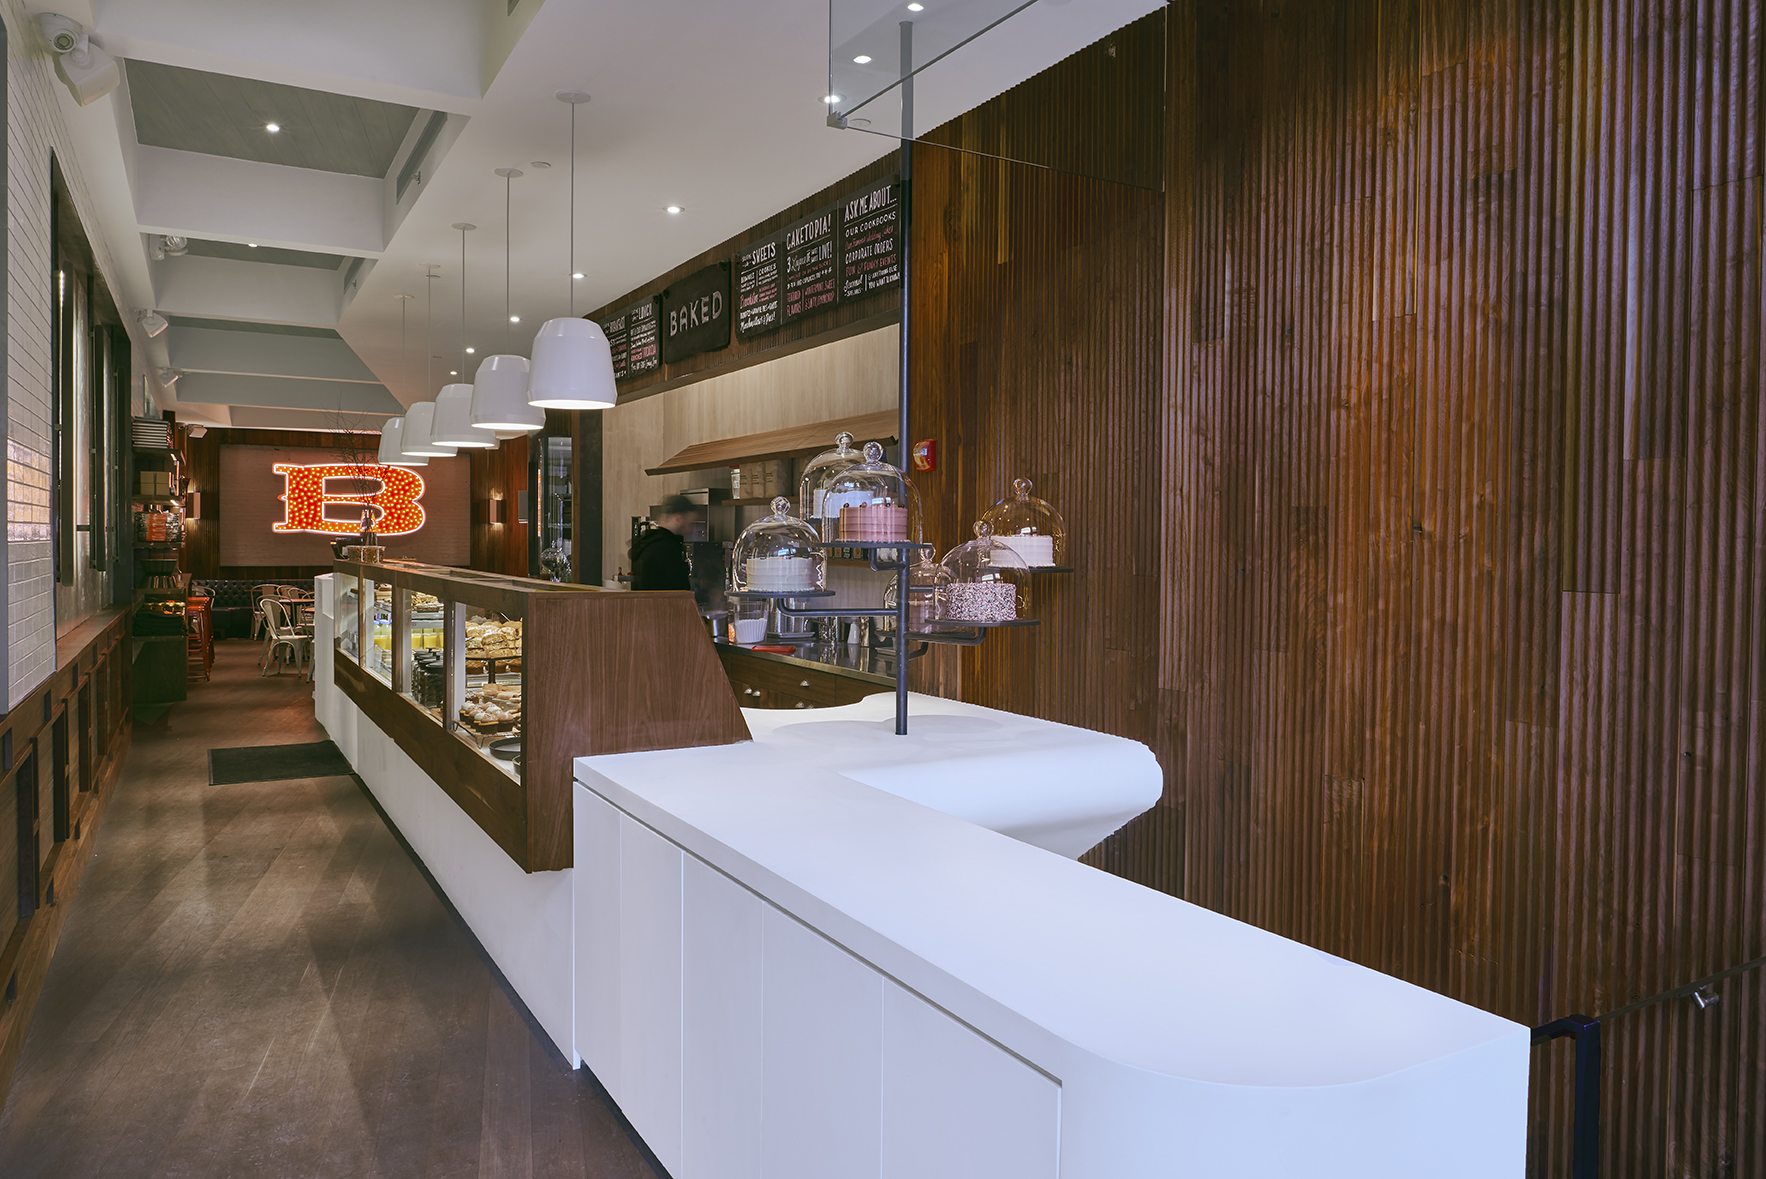 Natural light filtering into the bakery, Baked, located in Tribeca. MEP designed by New York based firm, 2L Engineering.